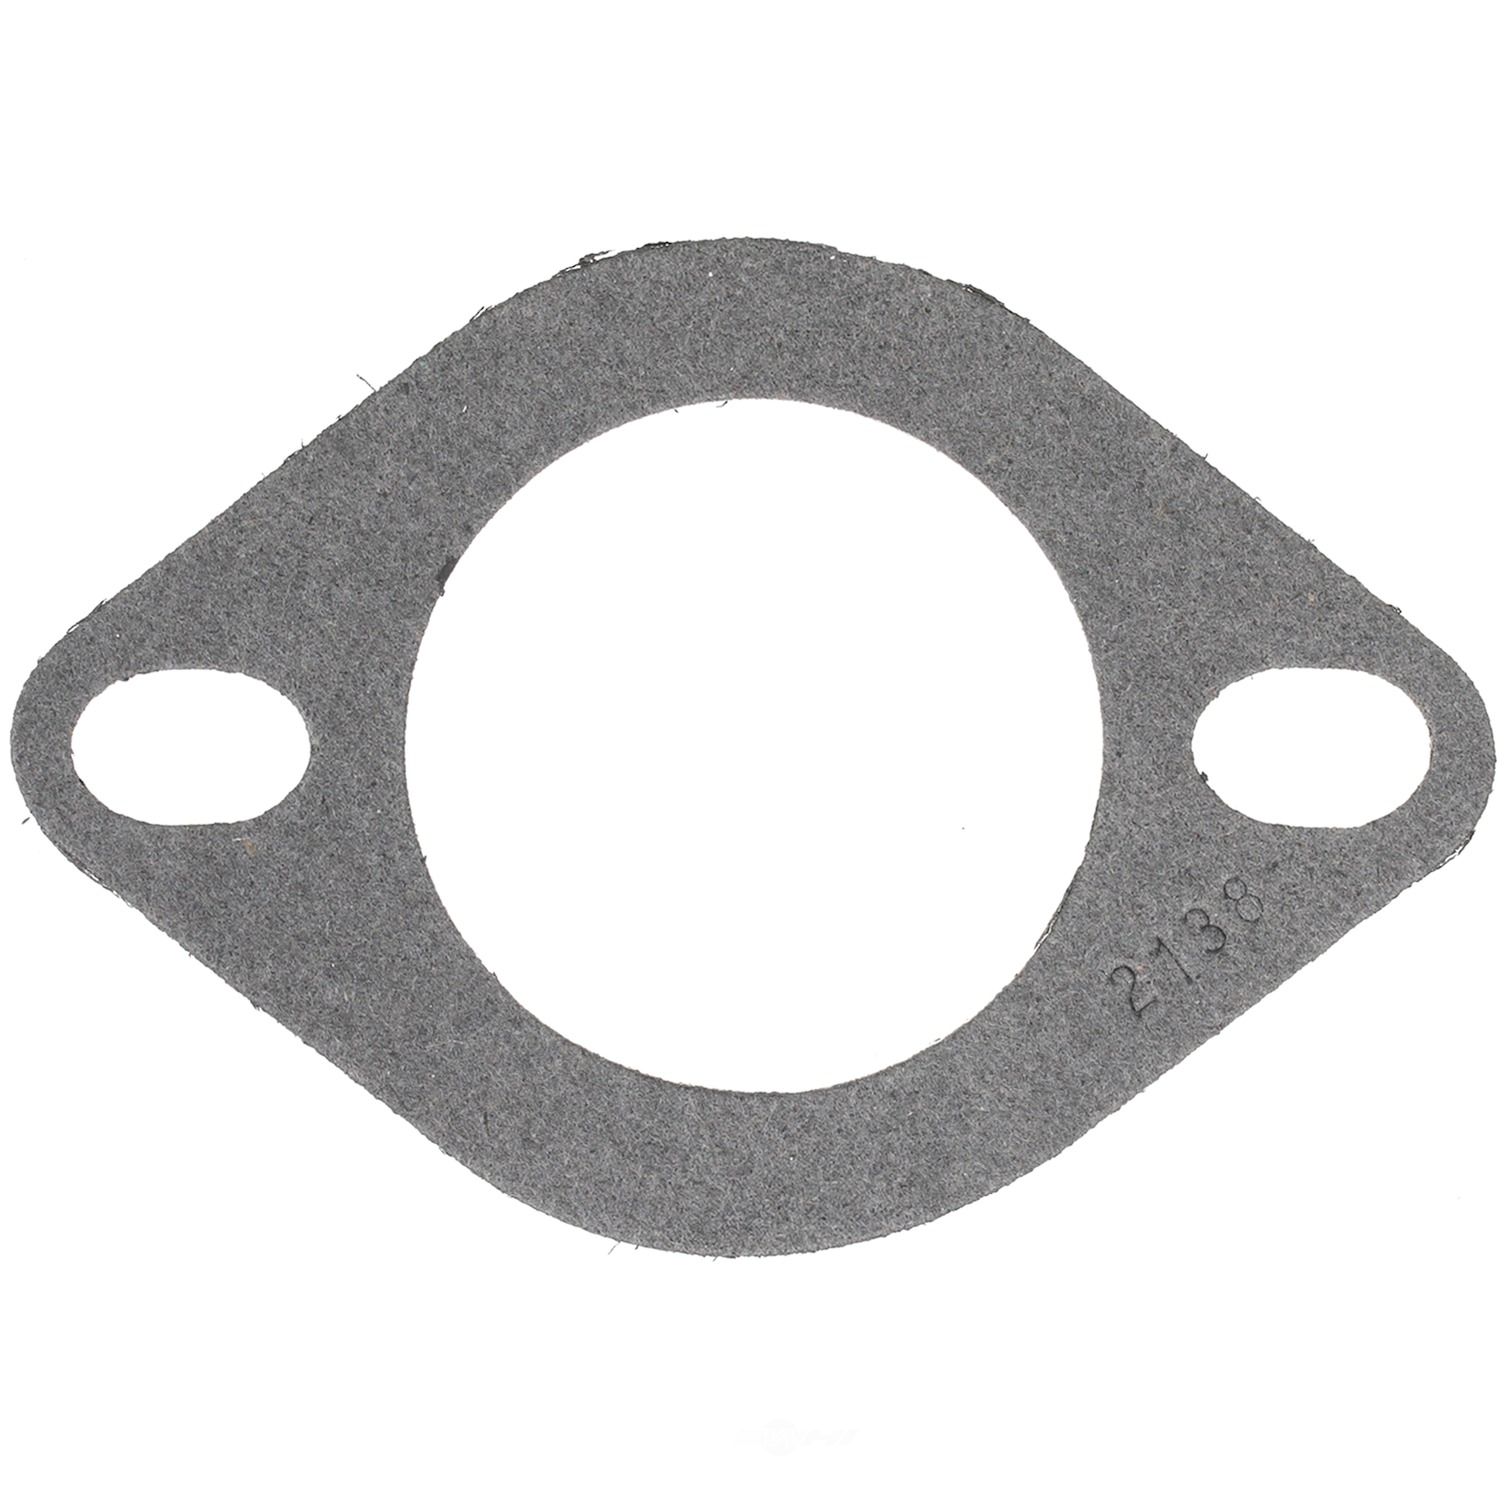 STANT - Thermostat Gasket - STN 27138